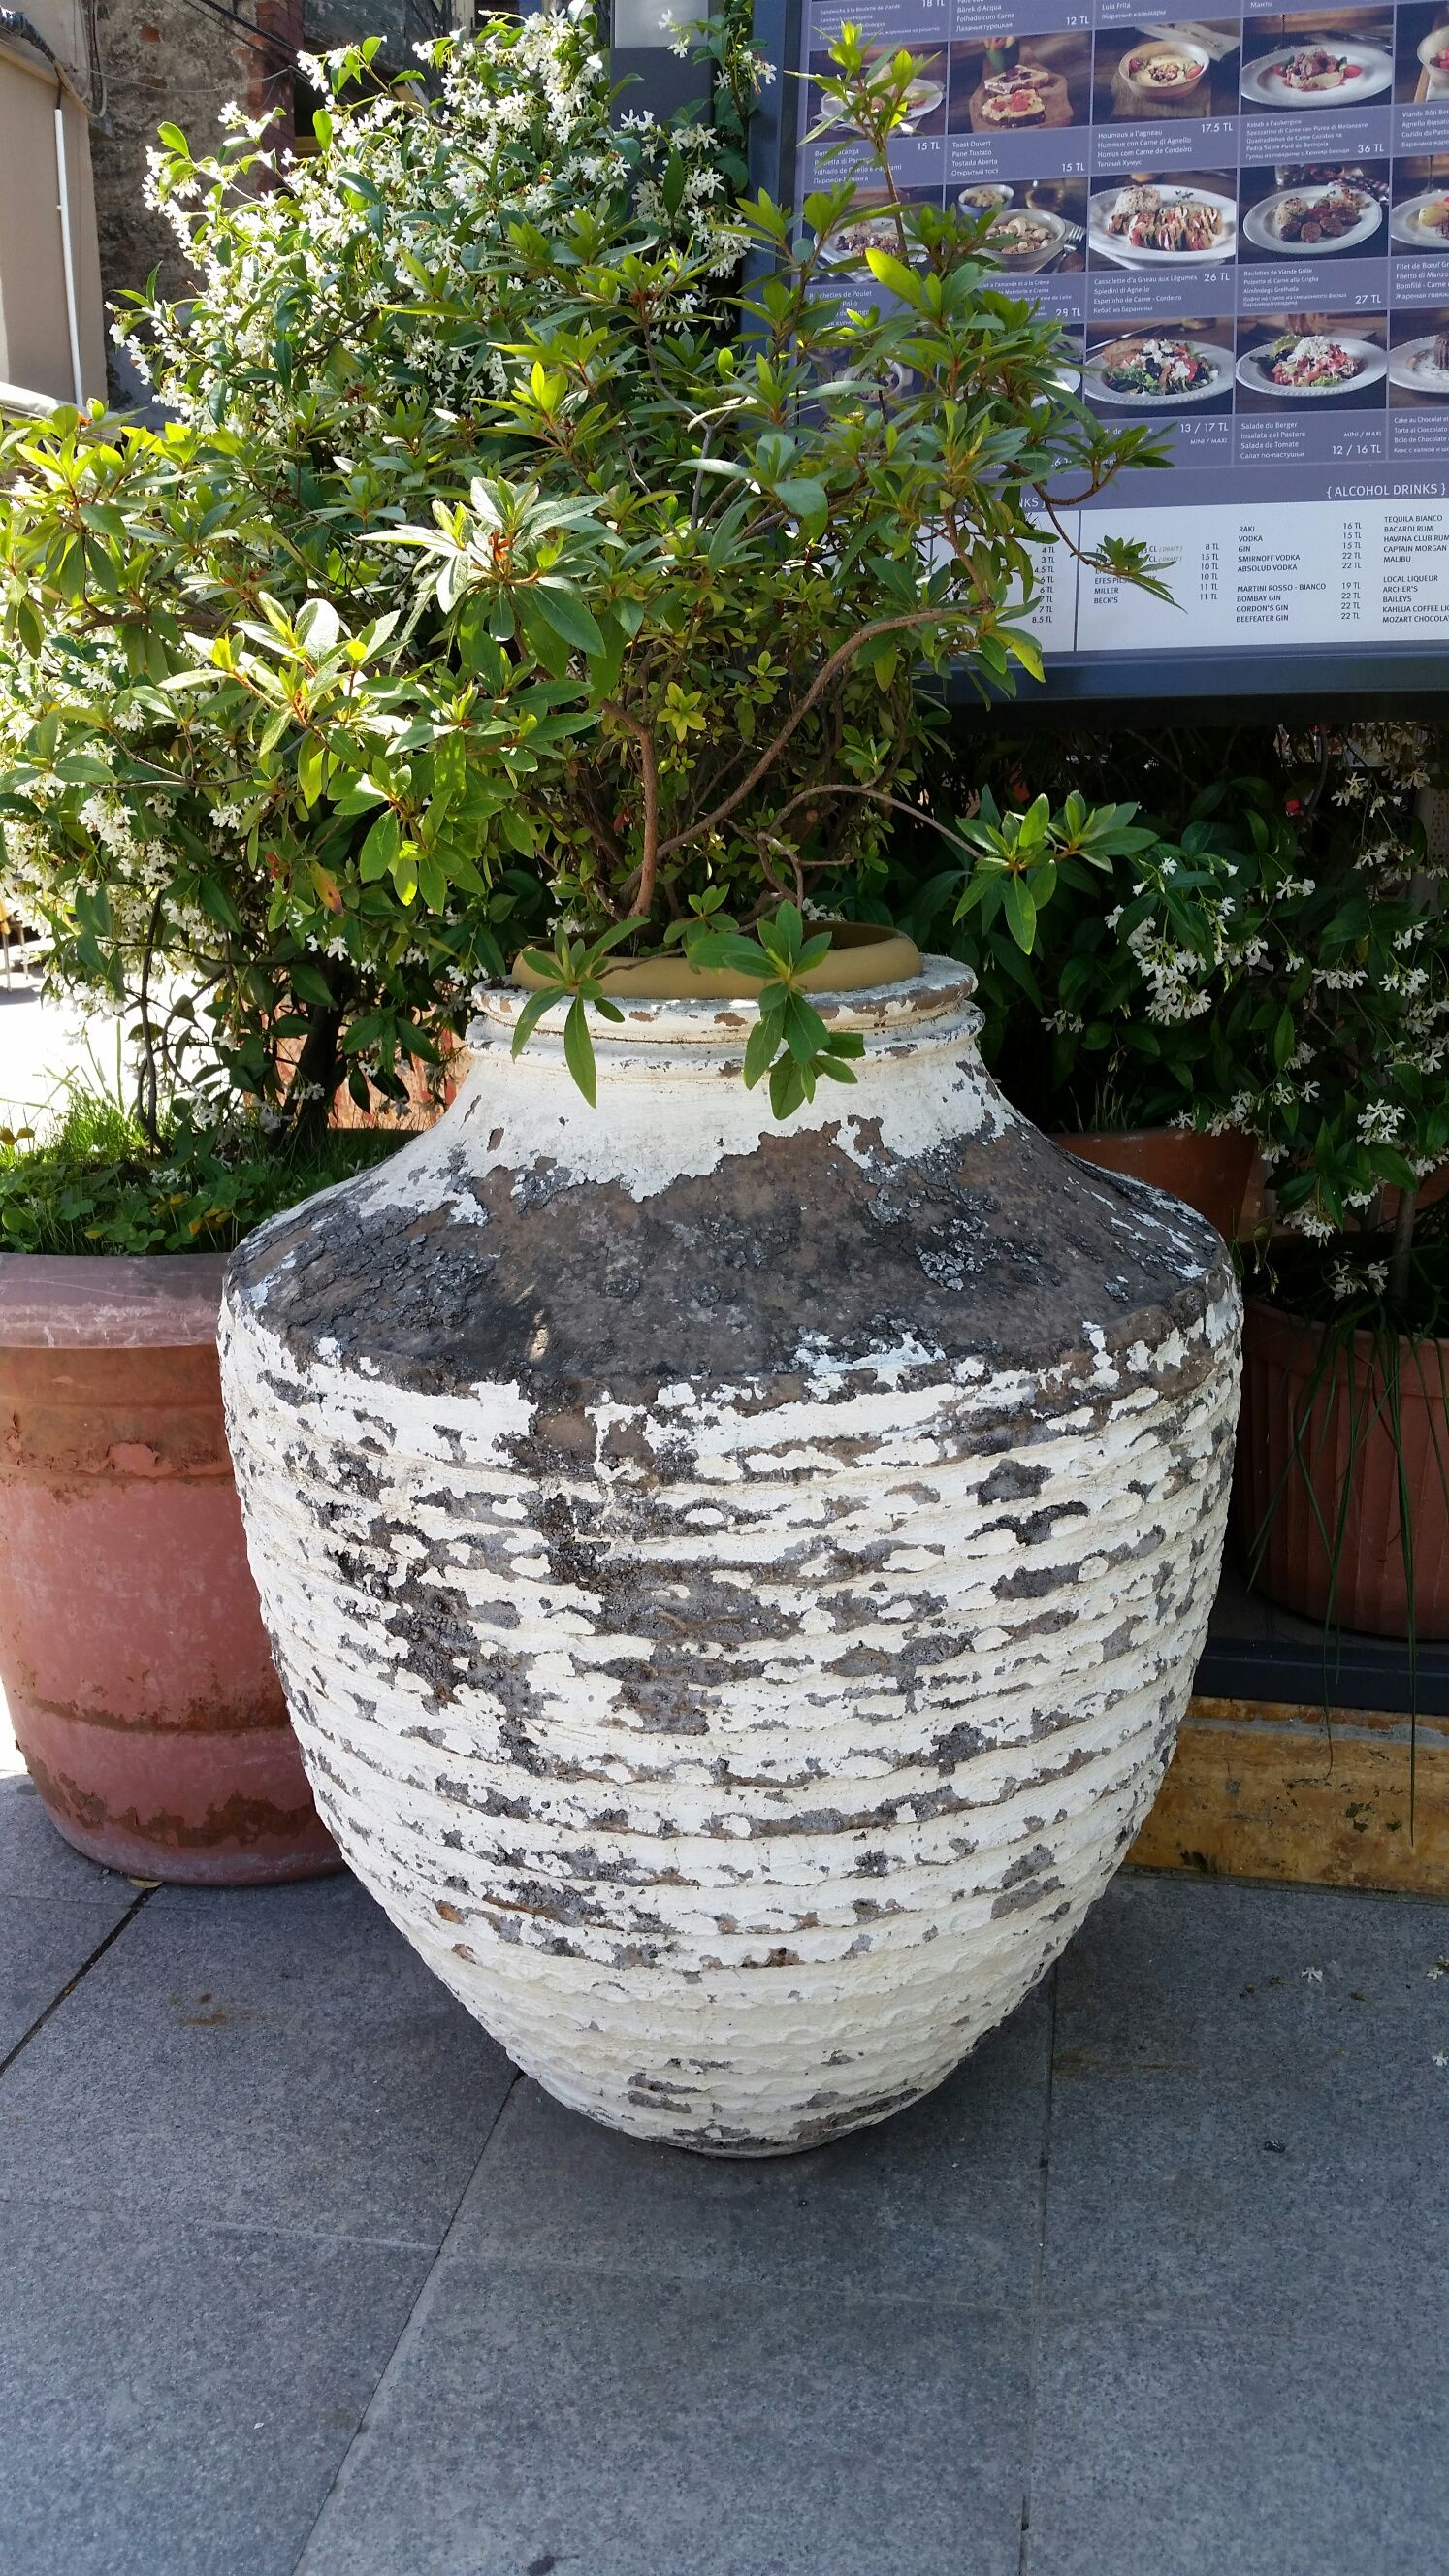 Outside a Turkish restaurant. Nice natural weathered look.